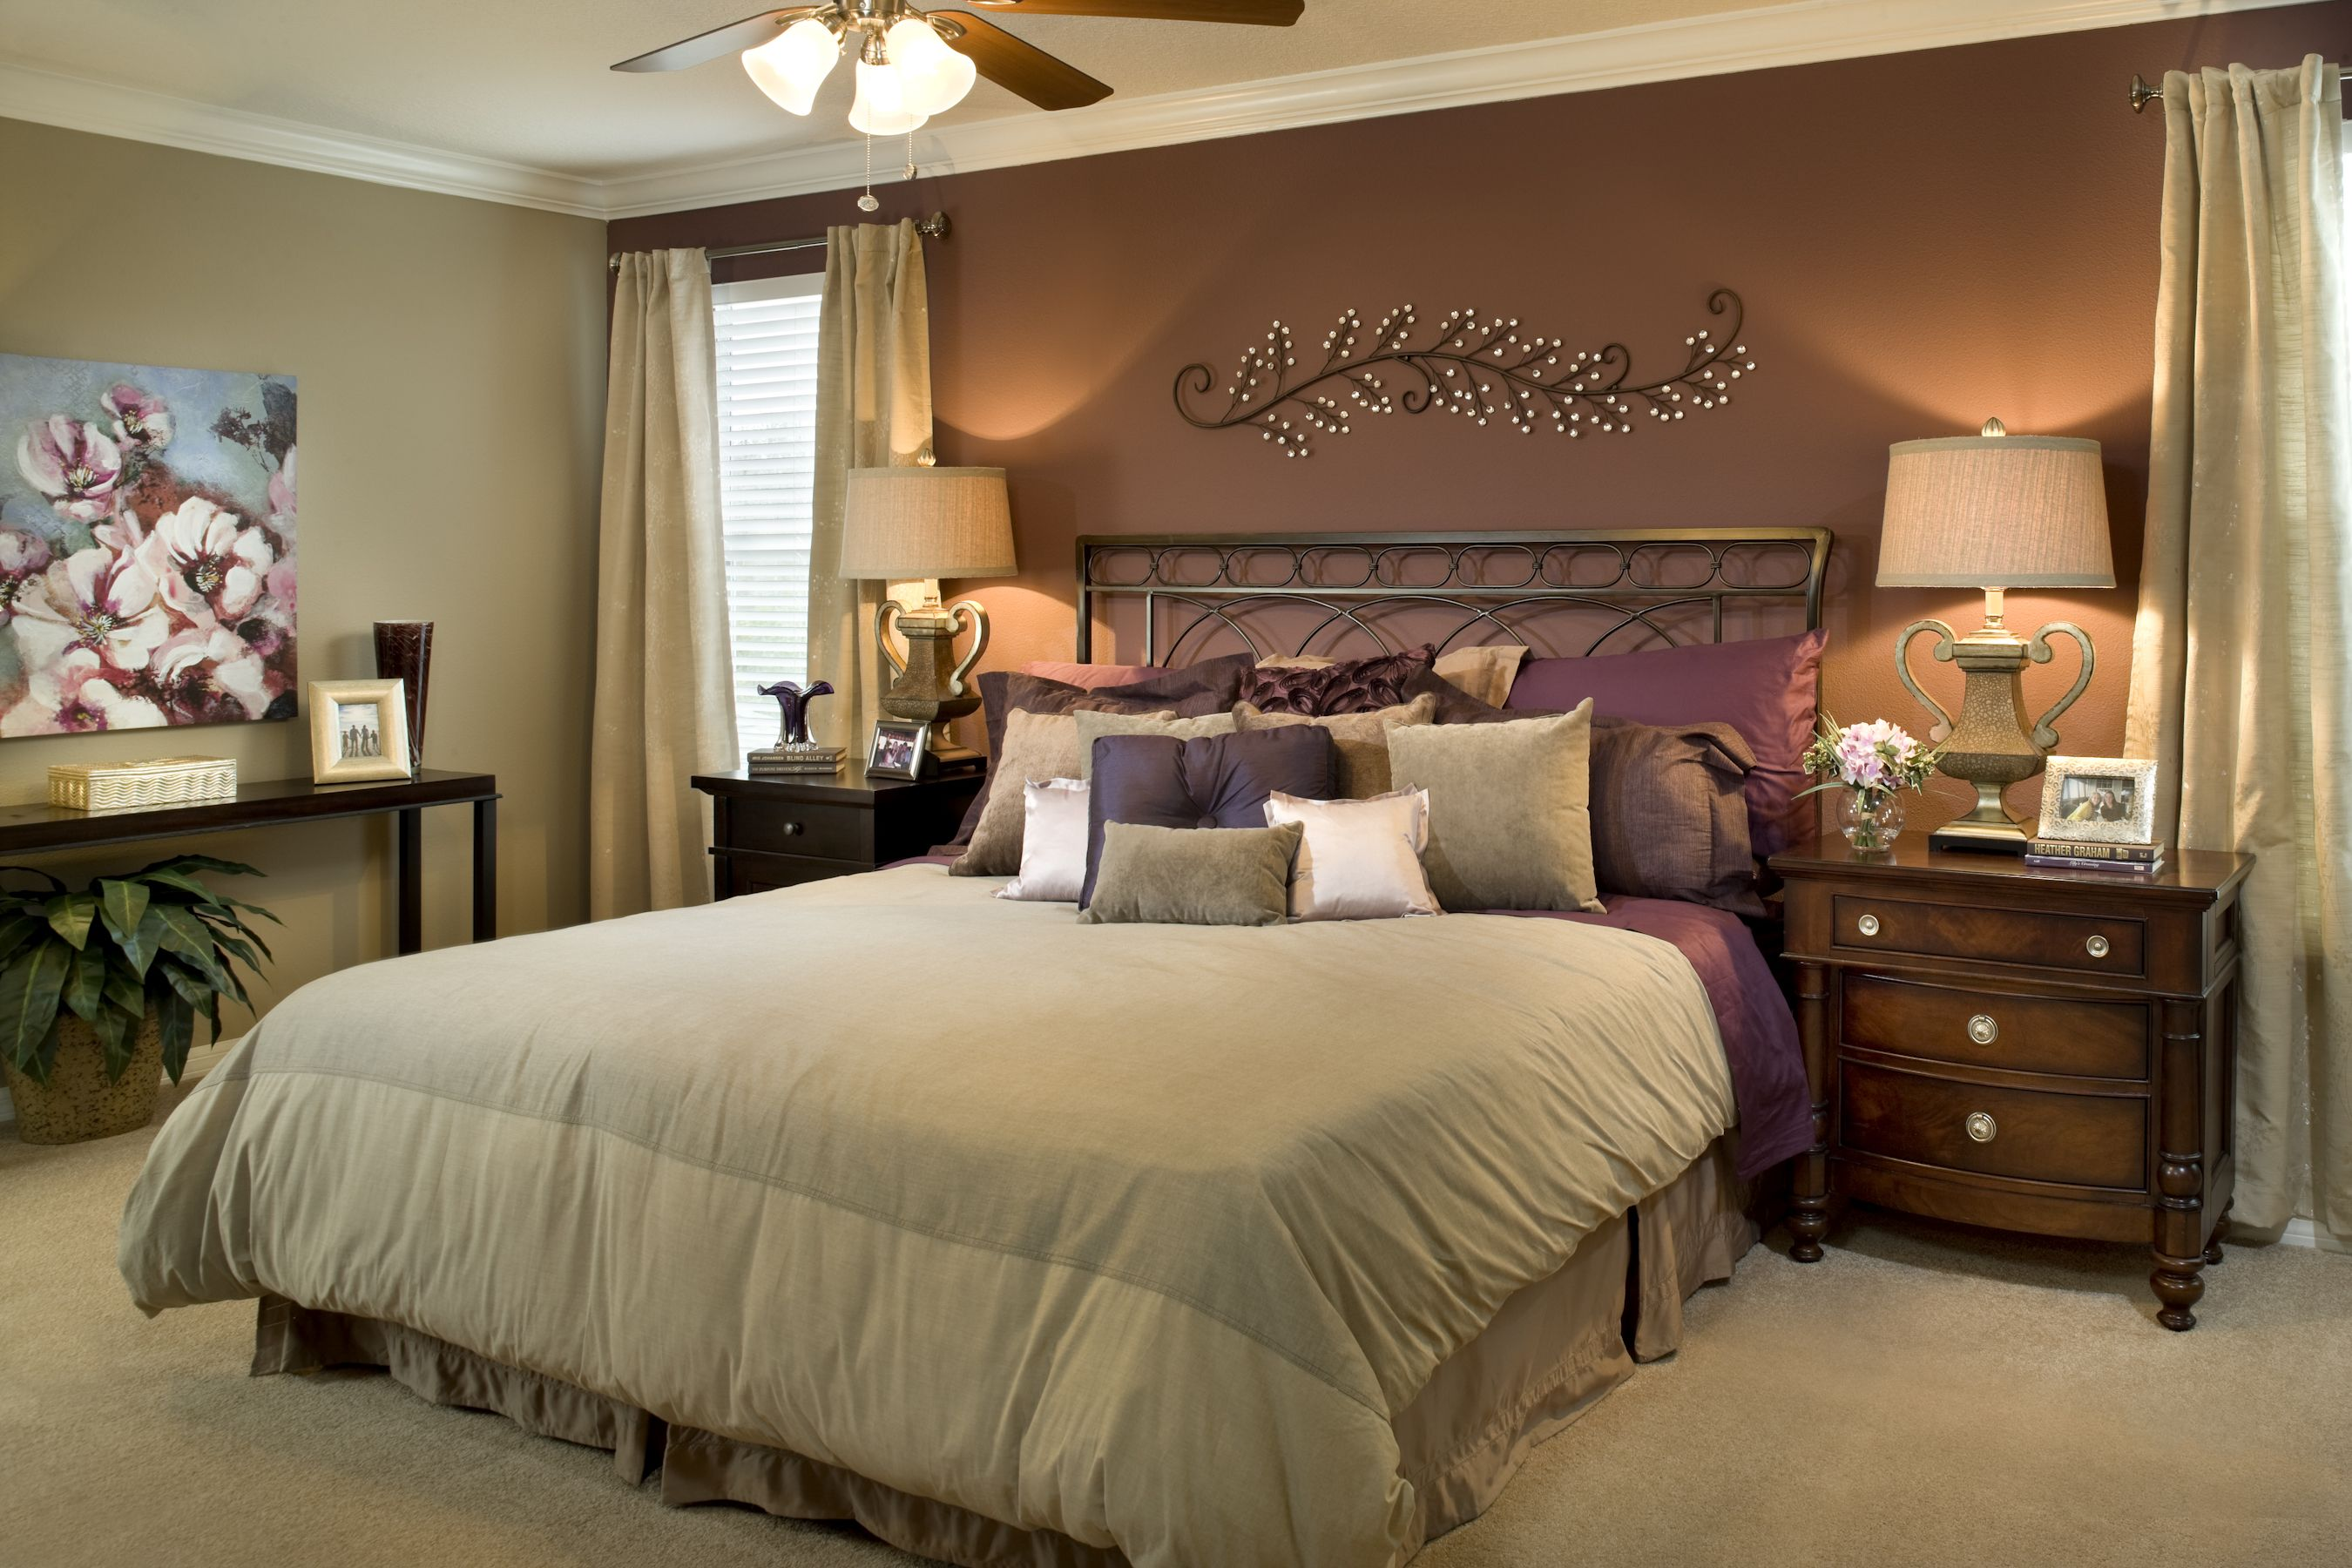 Beautiful Bedroom Accented With Lilac Decor In The Monaco